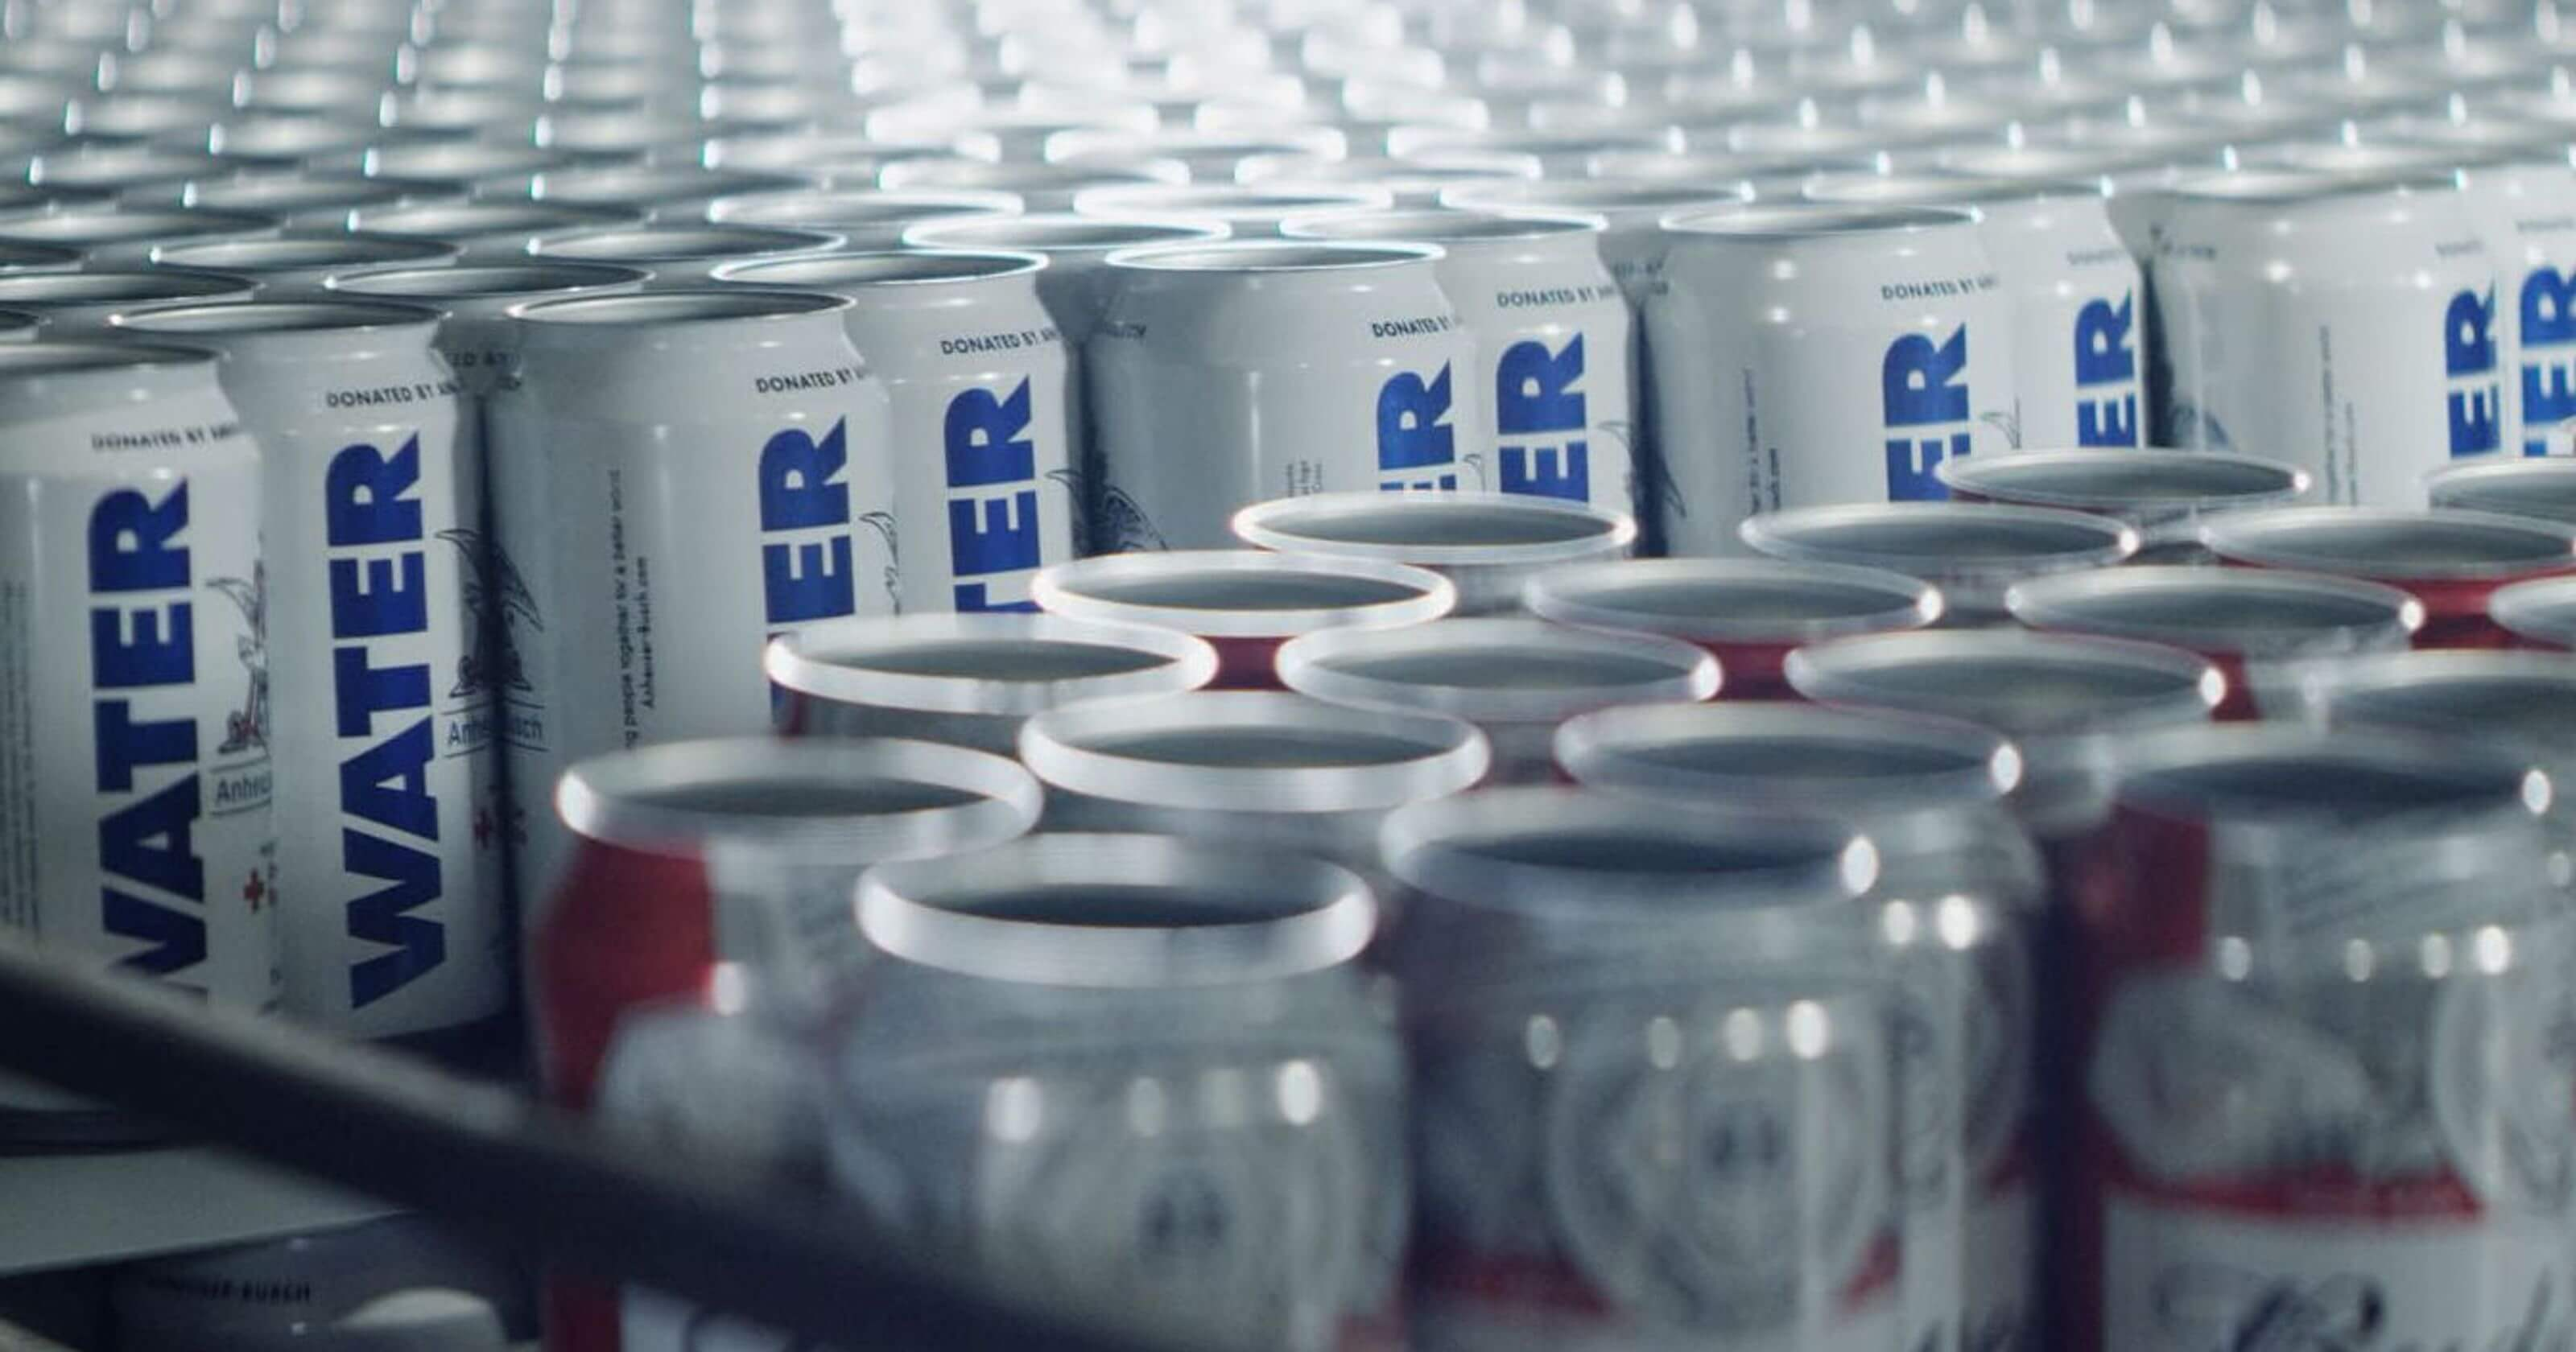 Small Market Eyeballs a Major Theme in Budweiser's Big Super Bowl Push